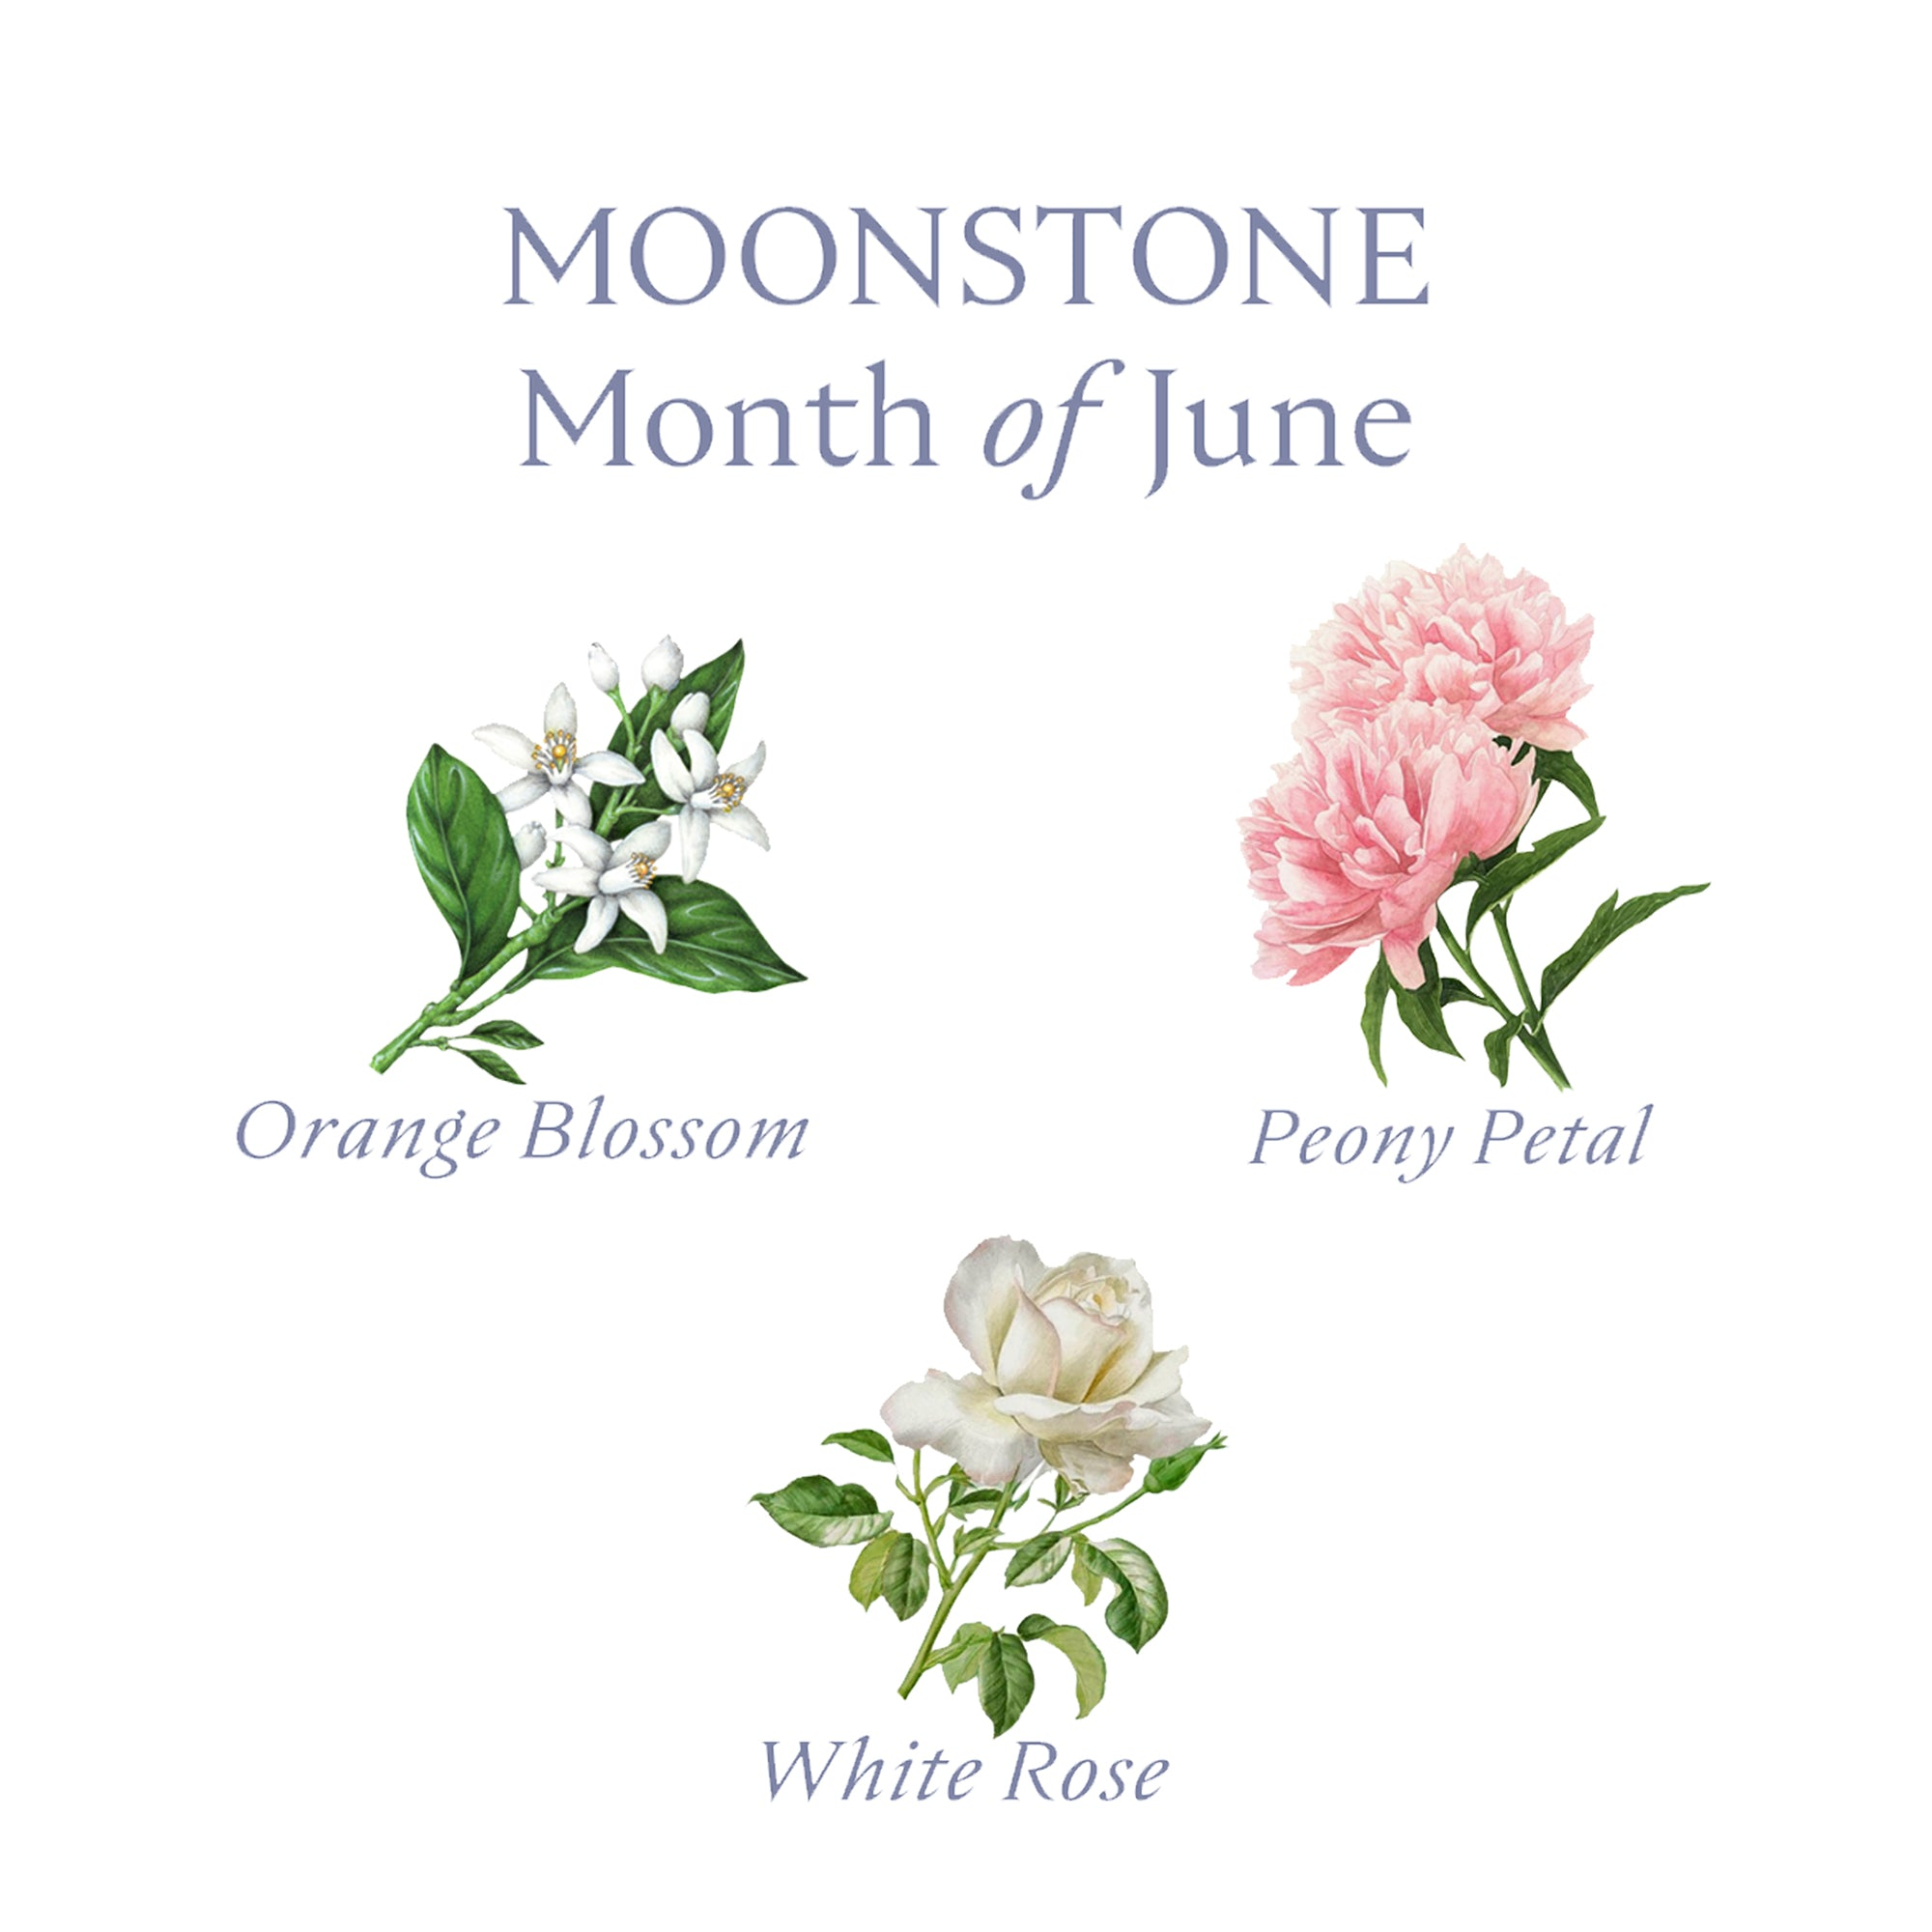 MOONSTONE PERFUME OIL | June